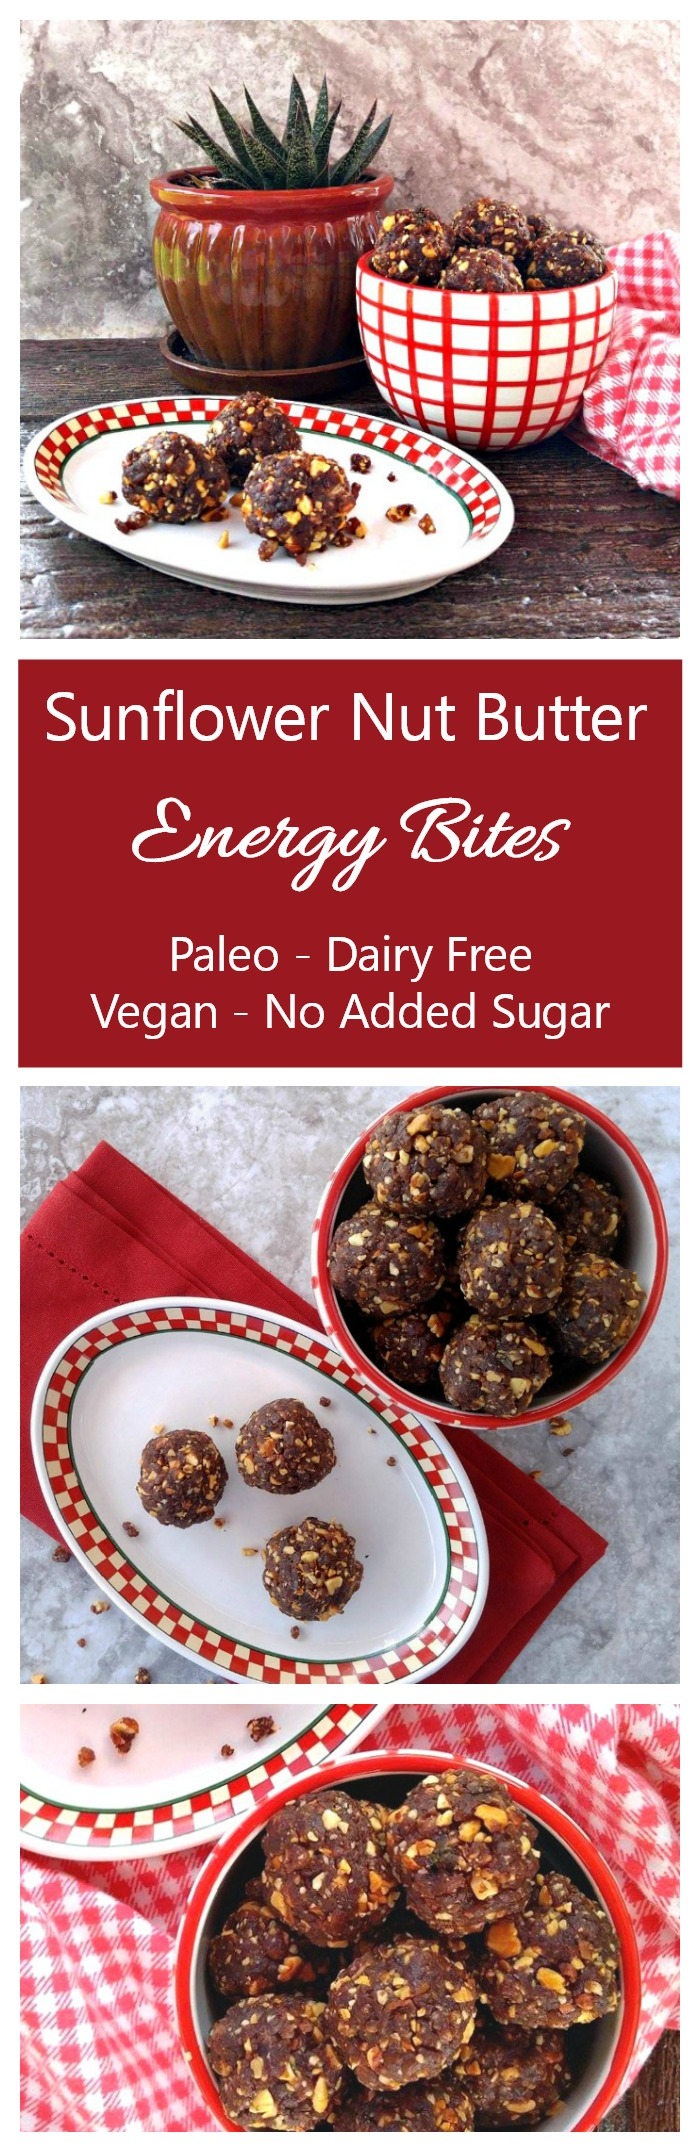 These sunflower nut butter energy bites have a rich chocolate and peanuty taste but have no added sugar.